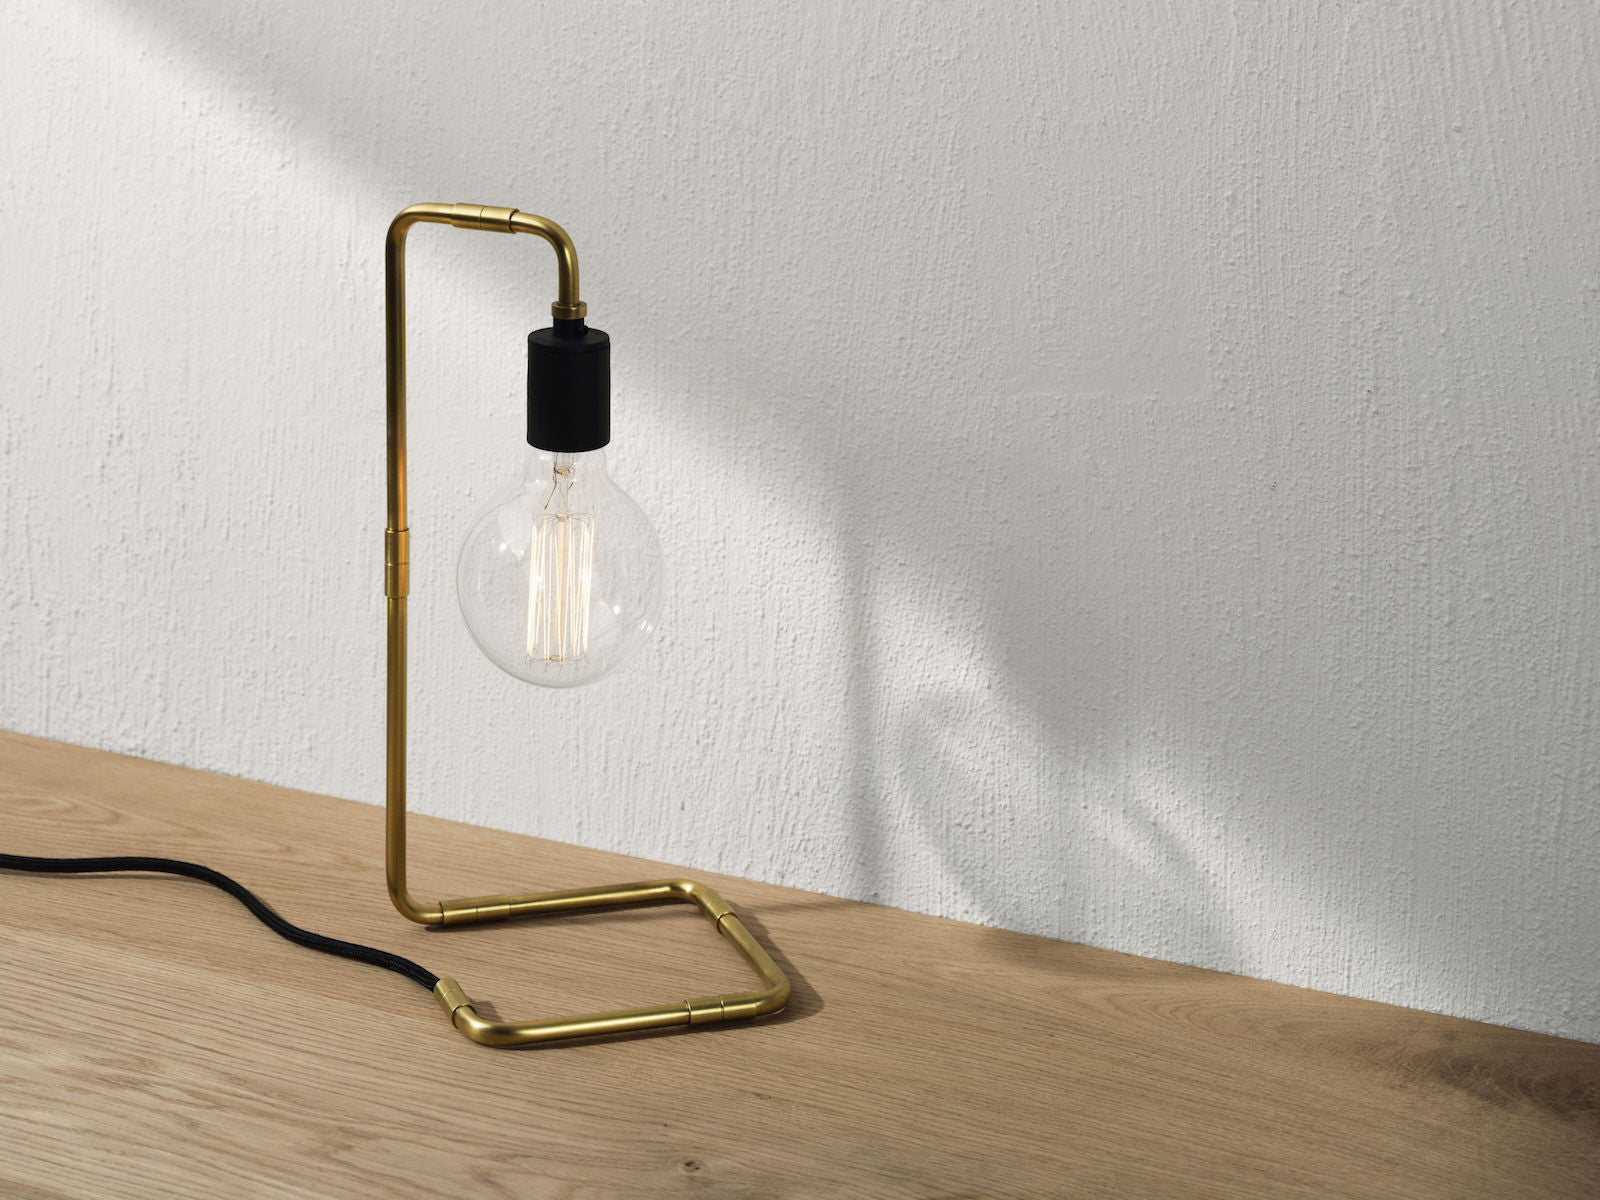 Tribeca Reade Bordlampe Messing fra Menu